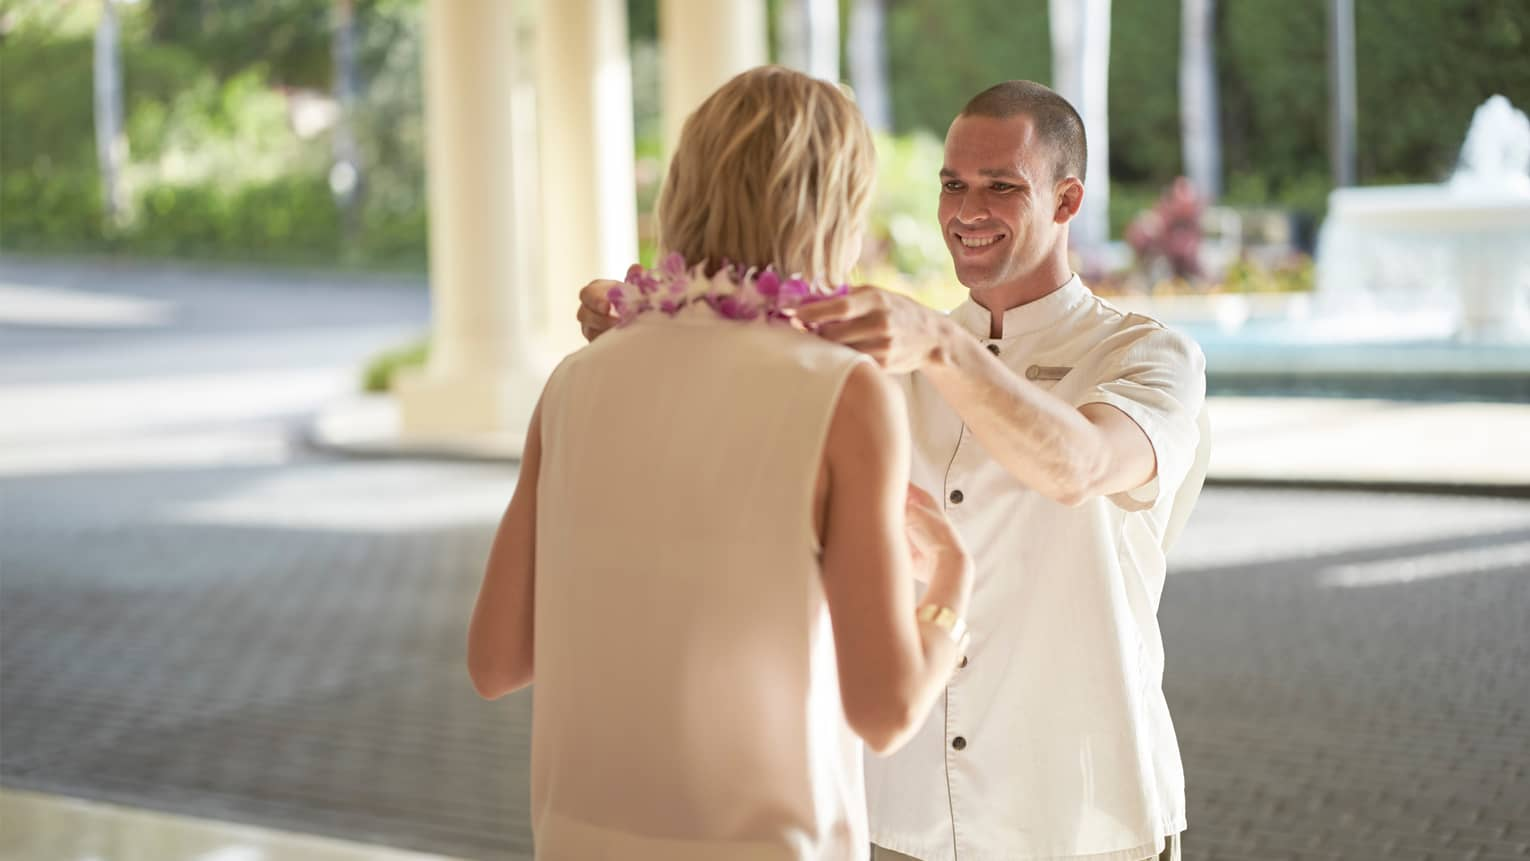 Man in white hotel uniform puts purple Hawaiian lei garland around woman's neck